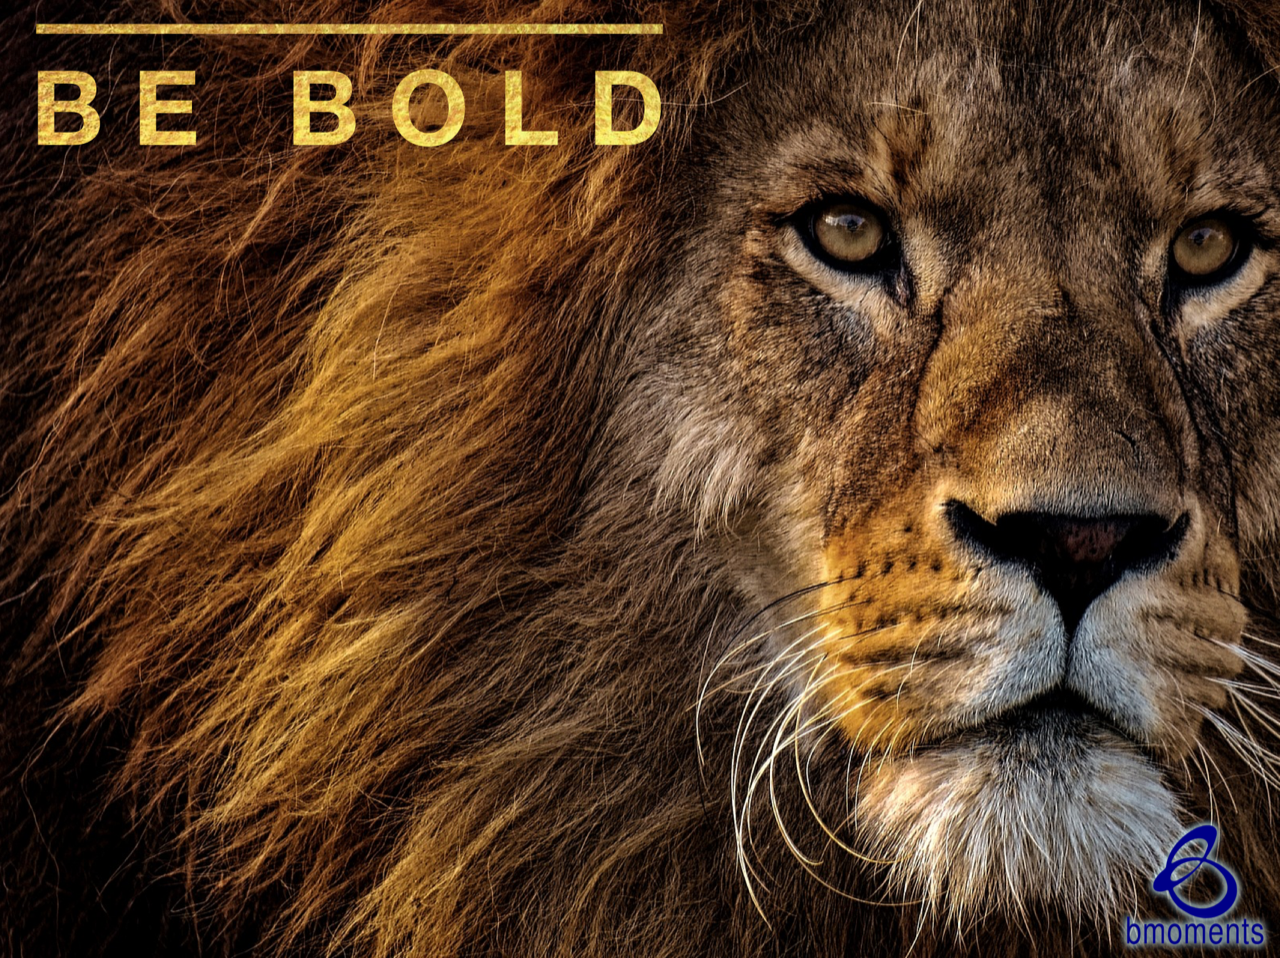 Be Bold as a Lion: Challenge the Status Quo